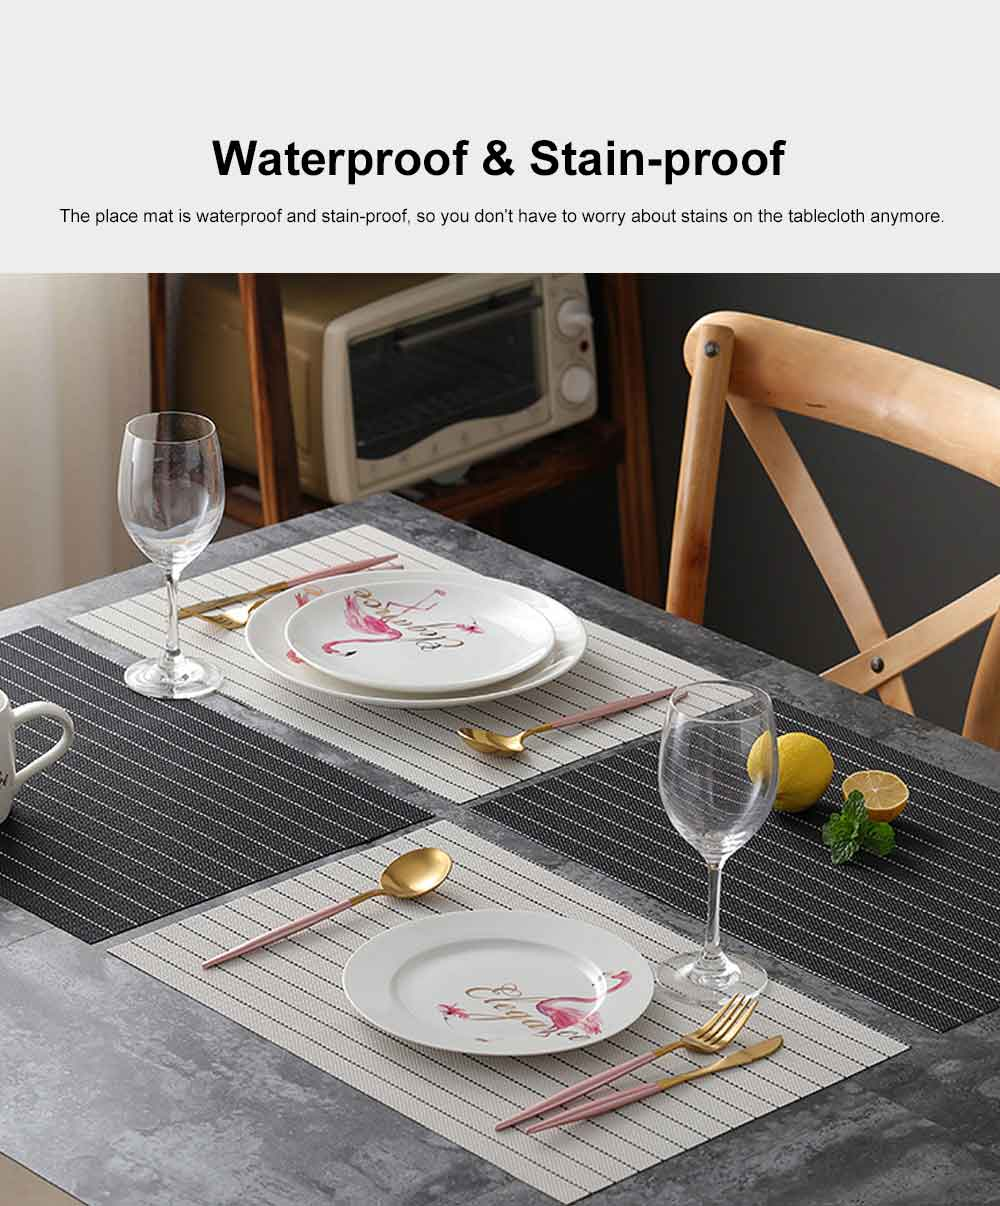 Place Mat PVC Waterproof Thicken Heat Resistant Modern Simple Table Mat European Style Heat Insulation Mat for Household 4